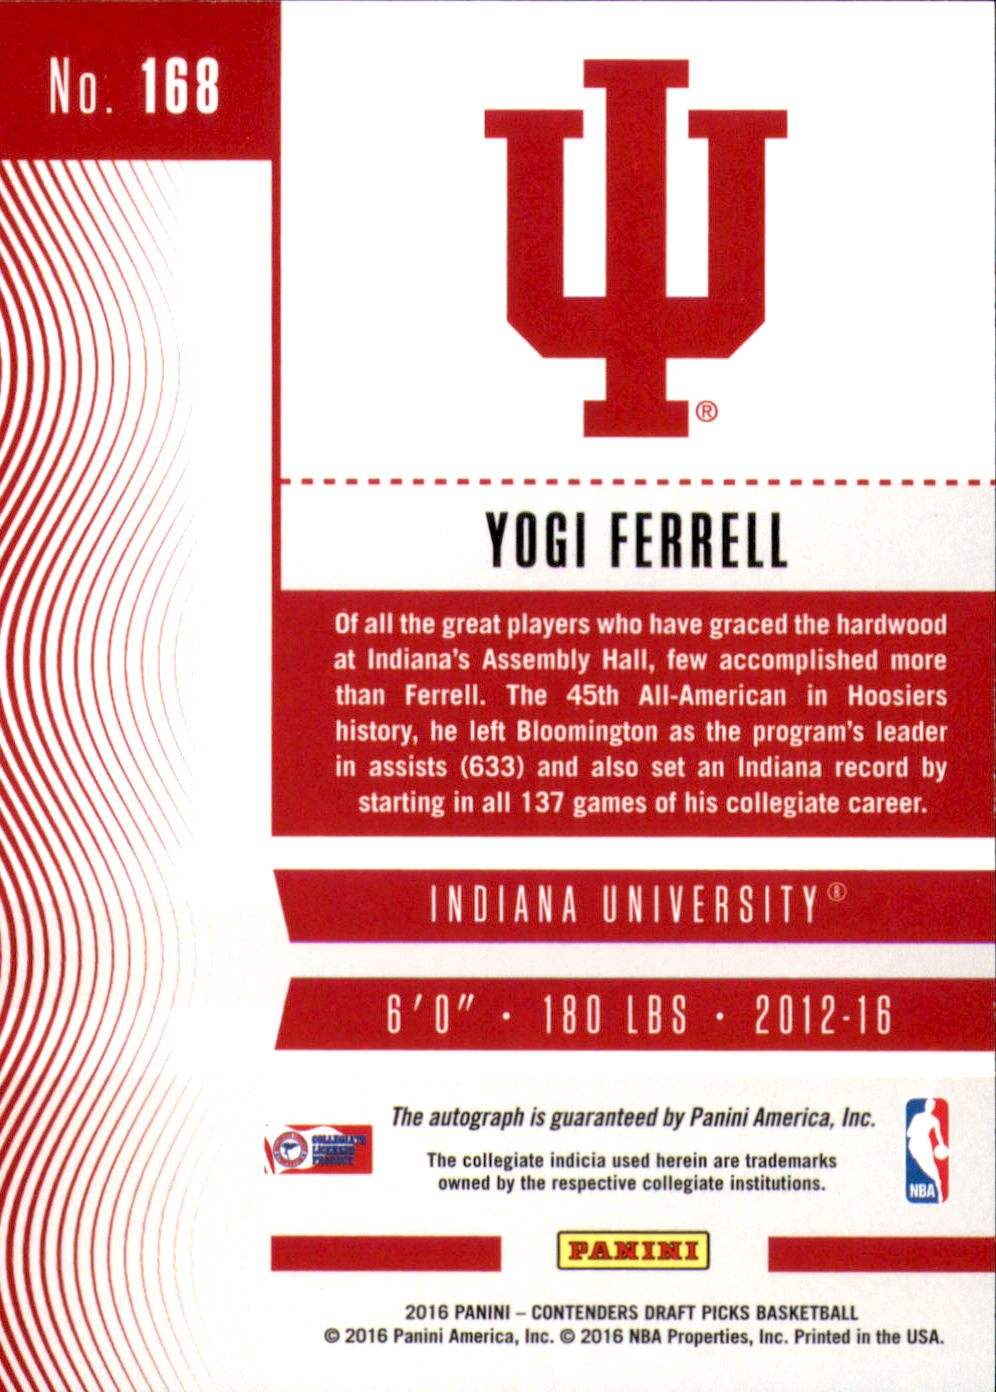 2016-17 Panini Contenders Draft Picks Draft Blue Foil #168 Yogi Ferrell AU back image